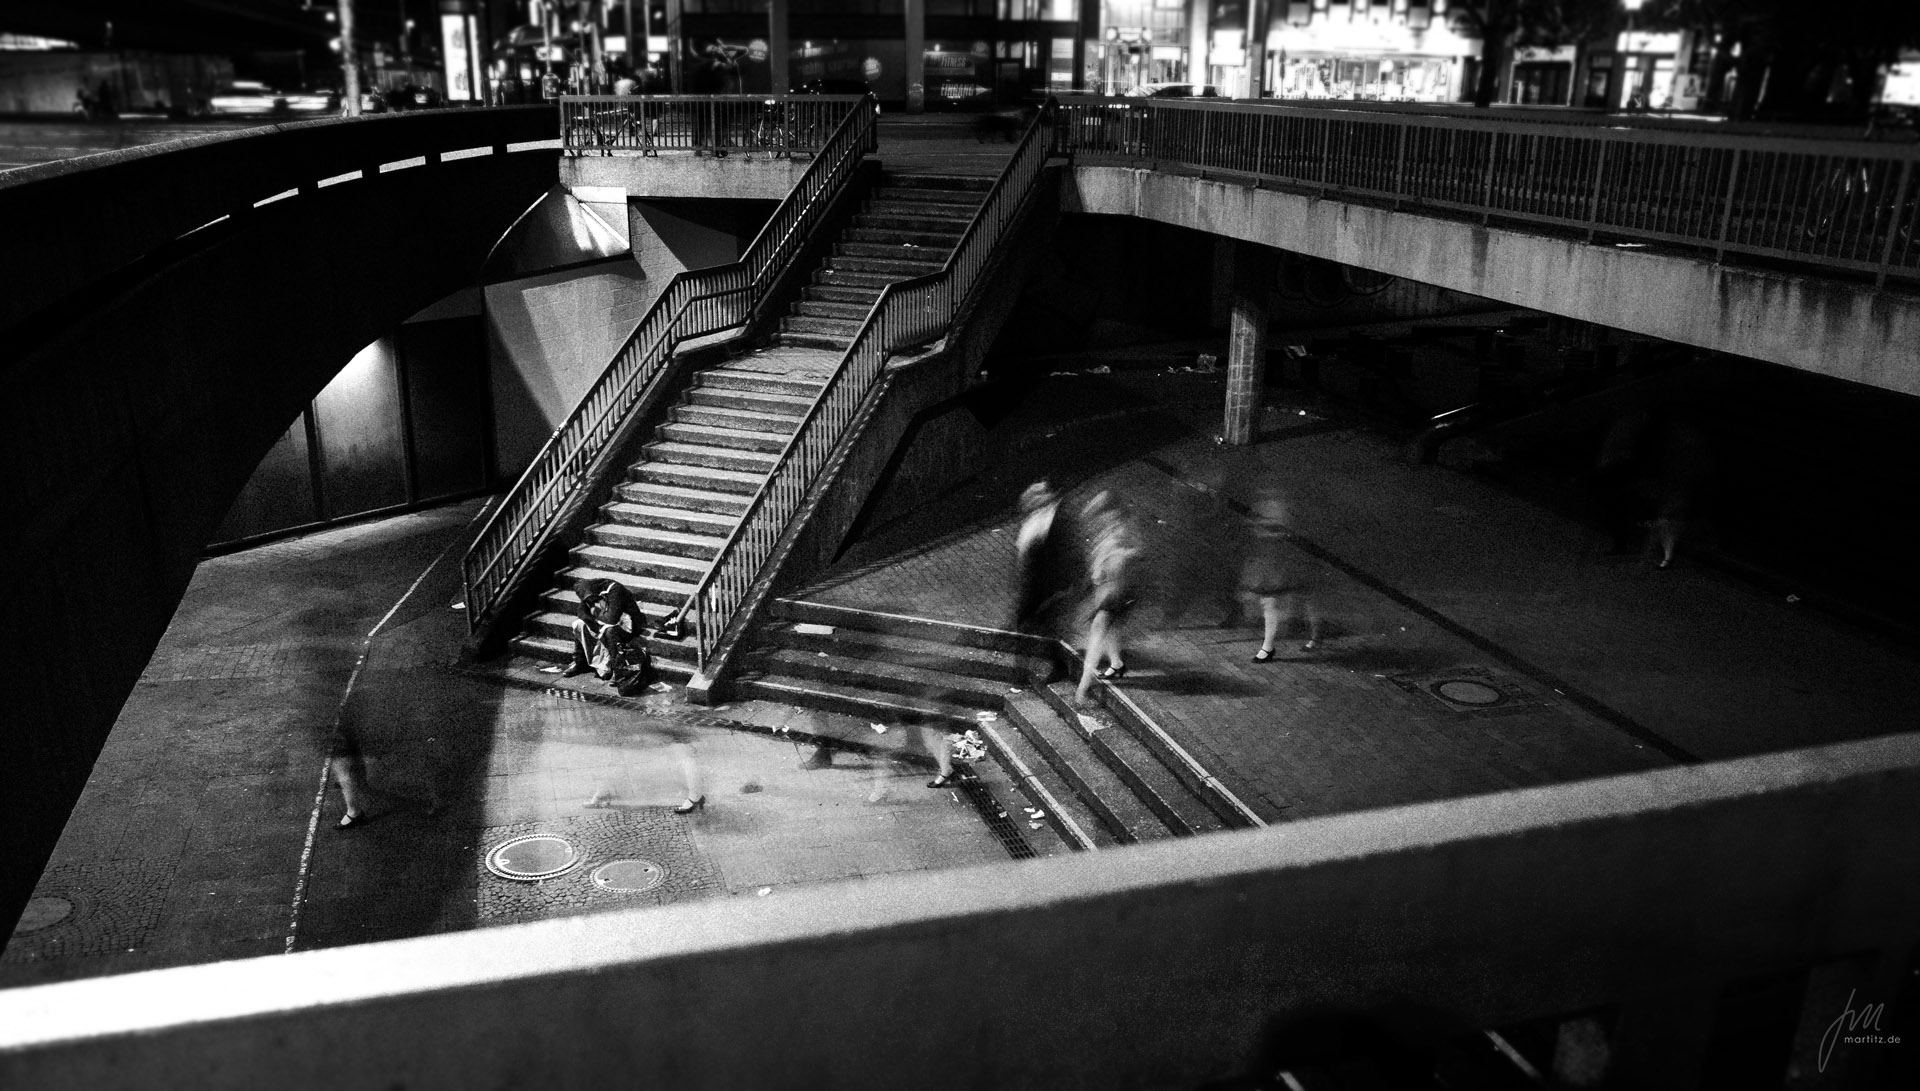 This picture is a multi-layered image. The focus rests on her shoe while it is contrasted by the rough environment and the guy sleeping on the steps. Opposites as they commonly appear in bigger cities and nobody gives a ****.